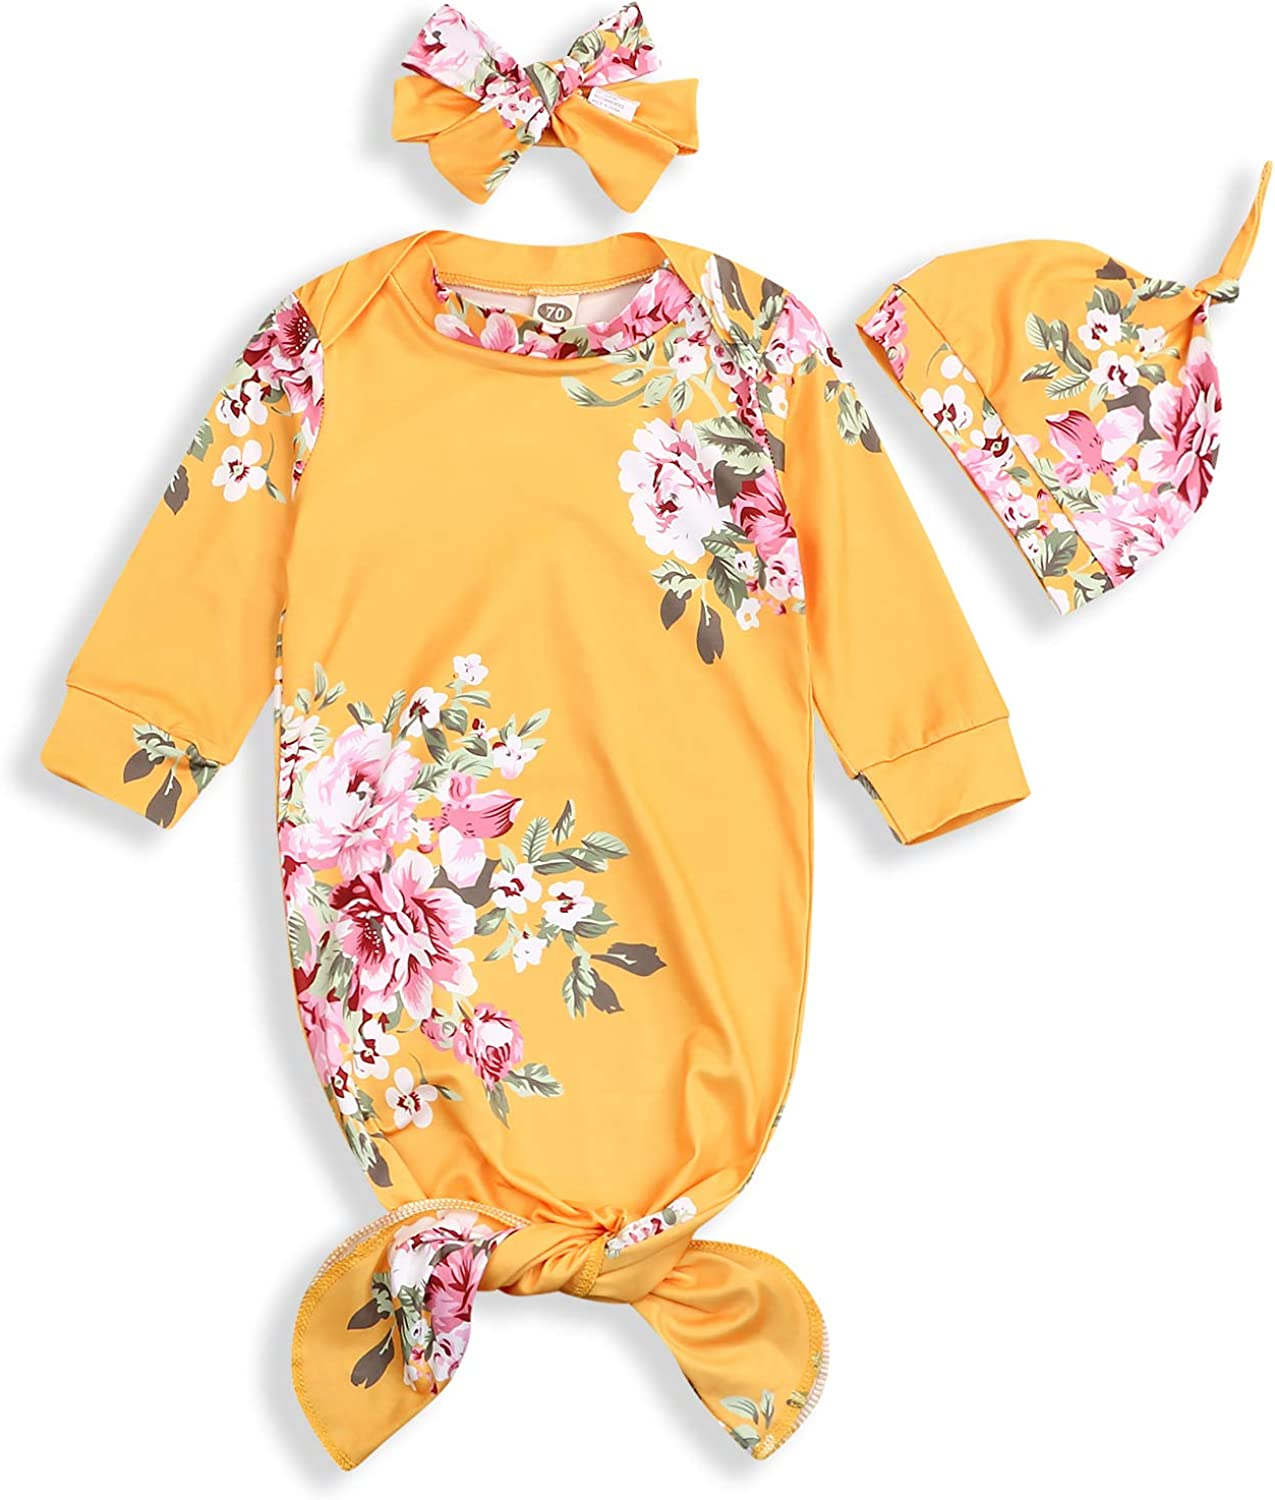 YOUNGER TREE 0-6 Months Newborn Baby Clothes Nightgowns Yellow Floral Swaddle Sleeping Bags Sleepwear Outfits